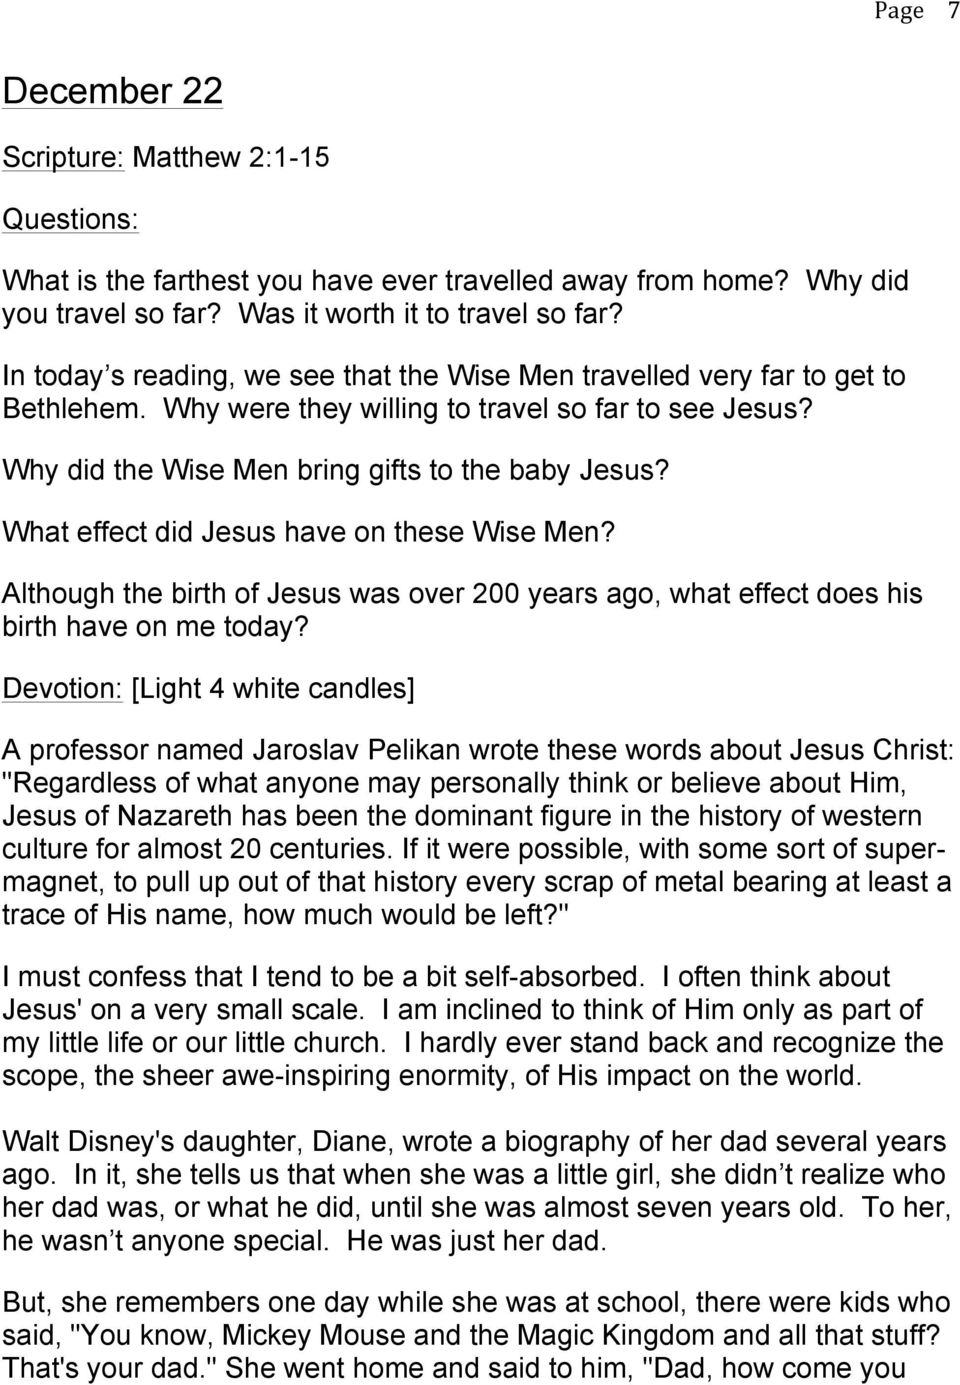 What effect did Jesus have on these Wise Men? Although the birth of Jesus was over 200 years ago, what effect does his birth have on me today?